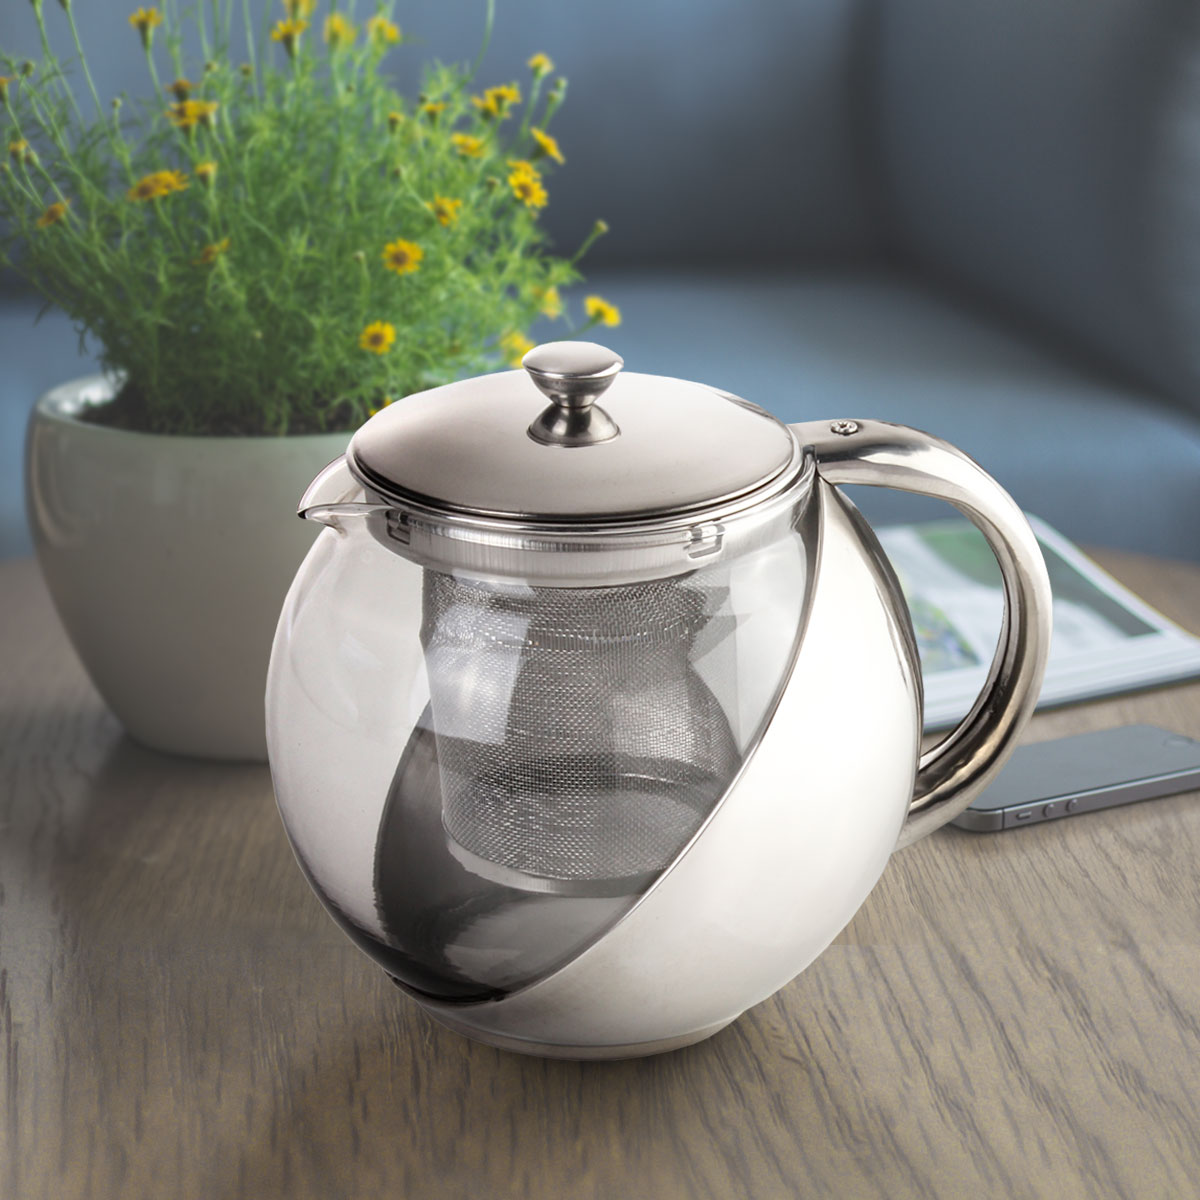 1Pcs Stainless Steel Glass TeaPot with Tea Leaf Strainer Filter Infuser Silver 900ML,Silver